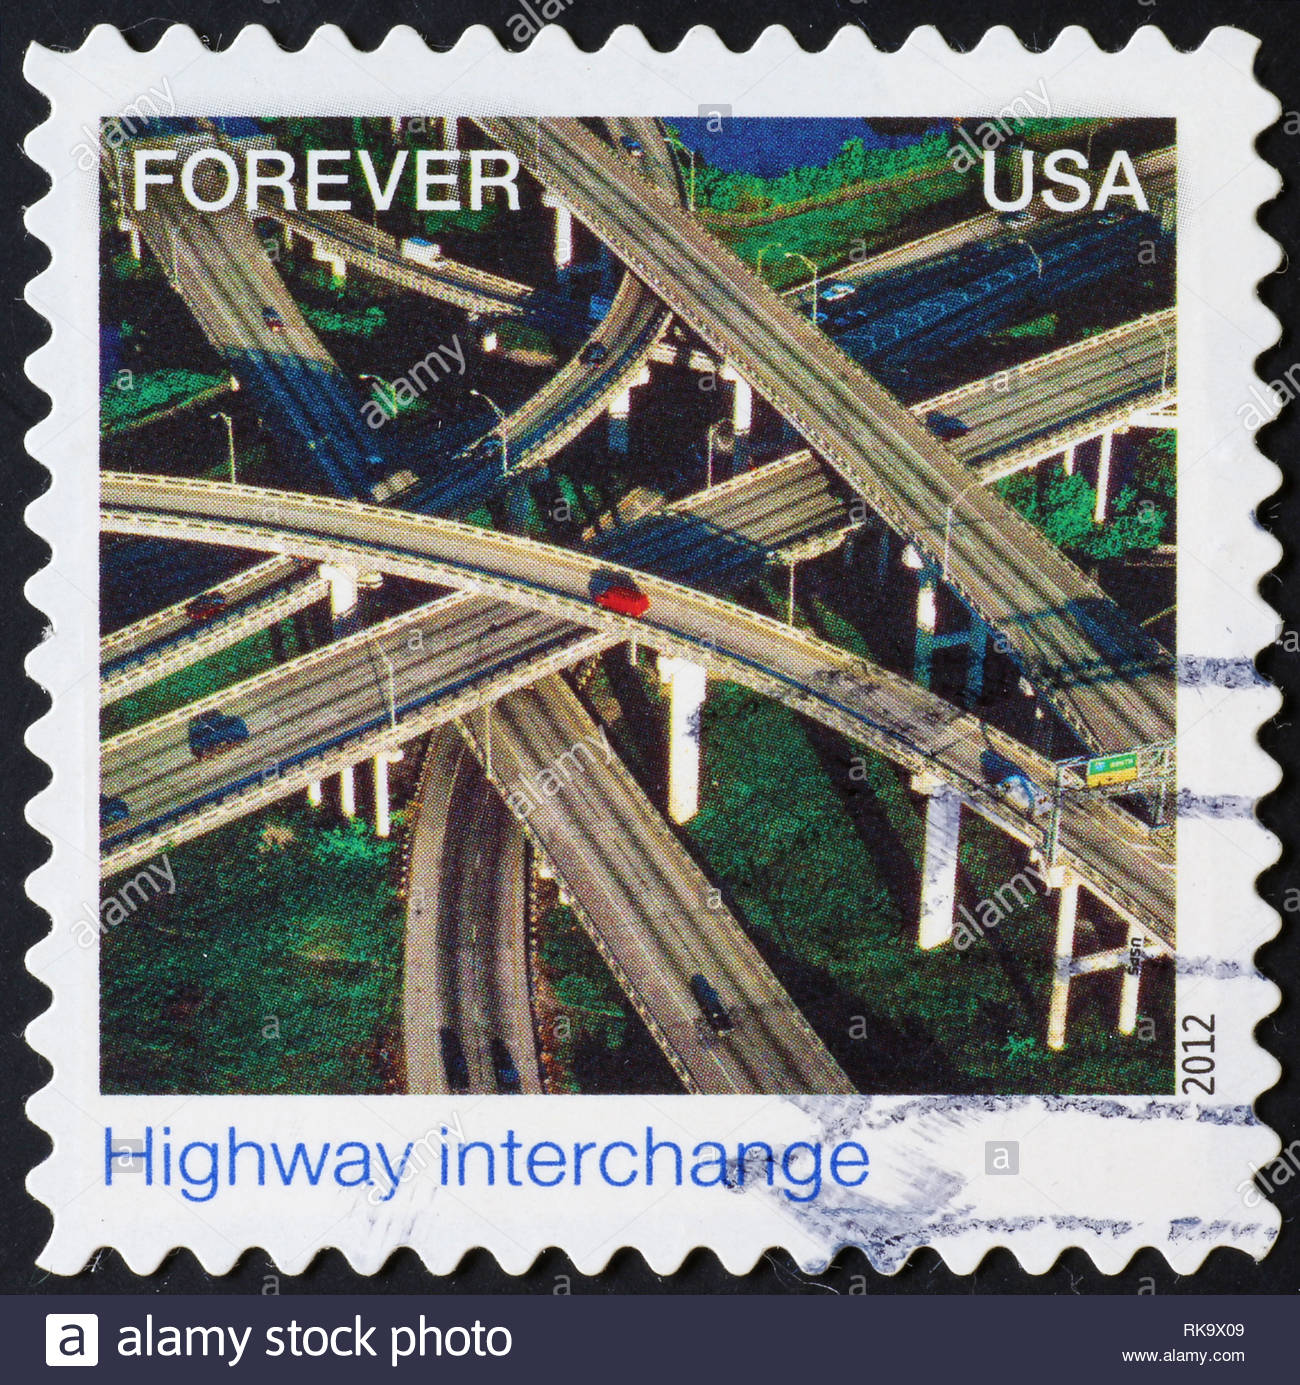 Intersecting highways on american postage stamp - Stock Image